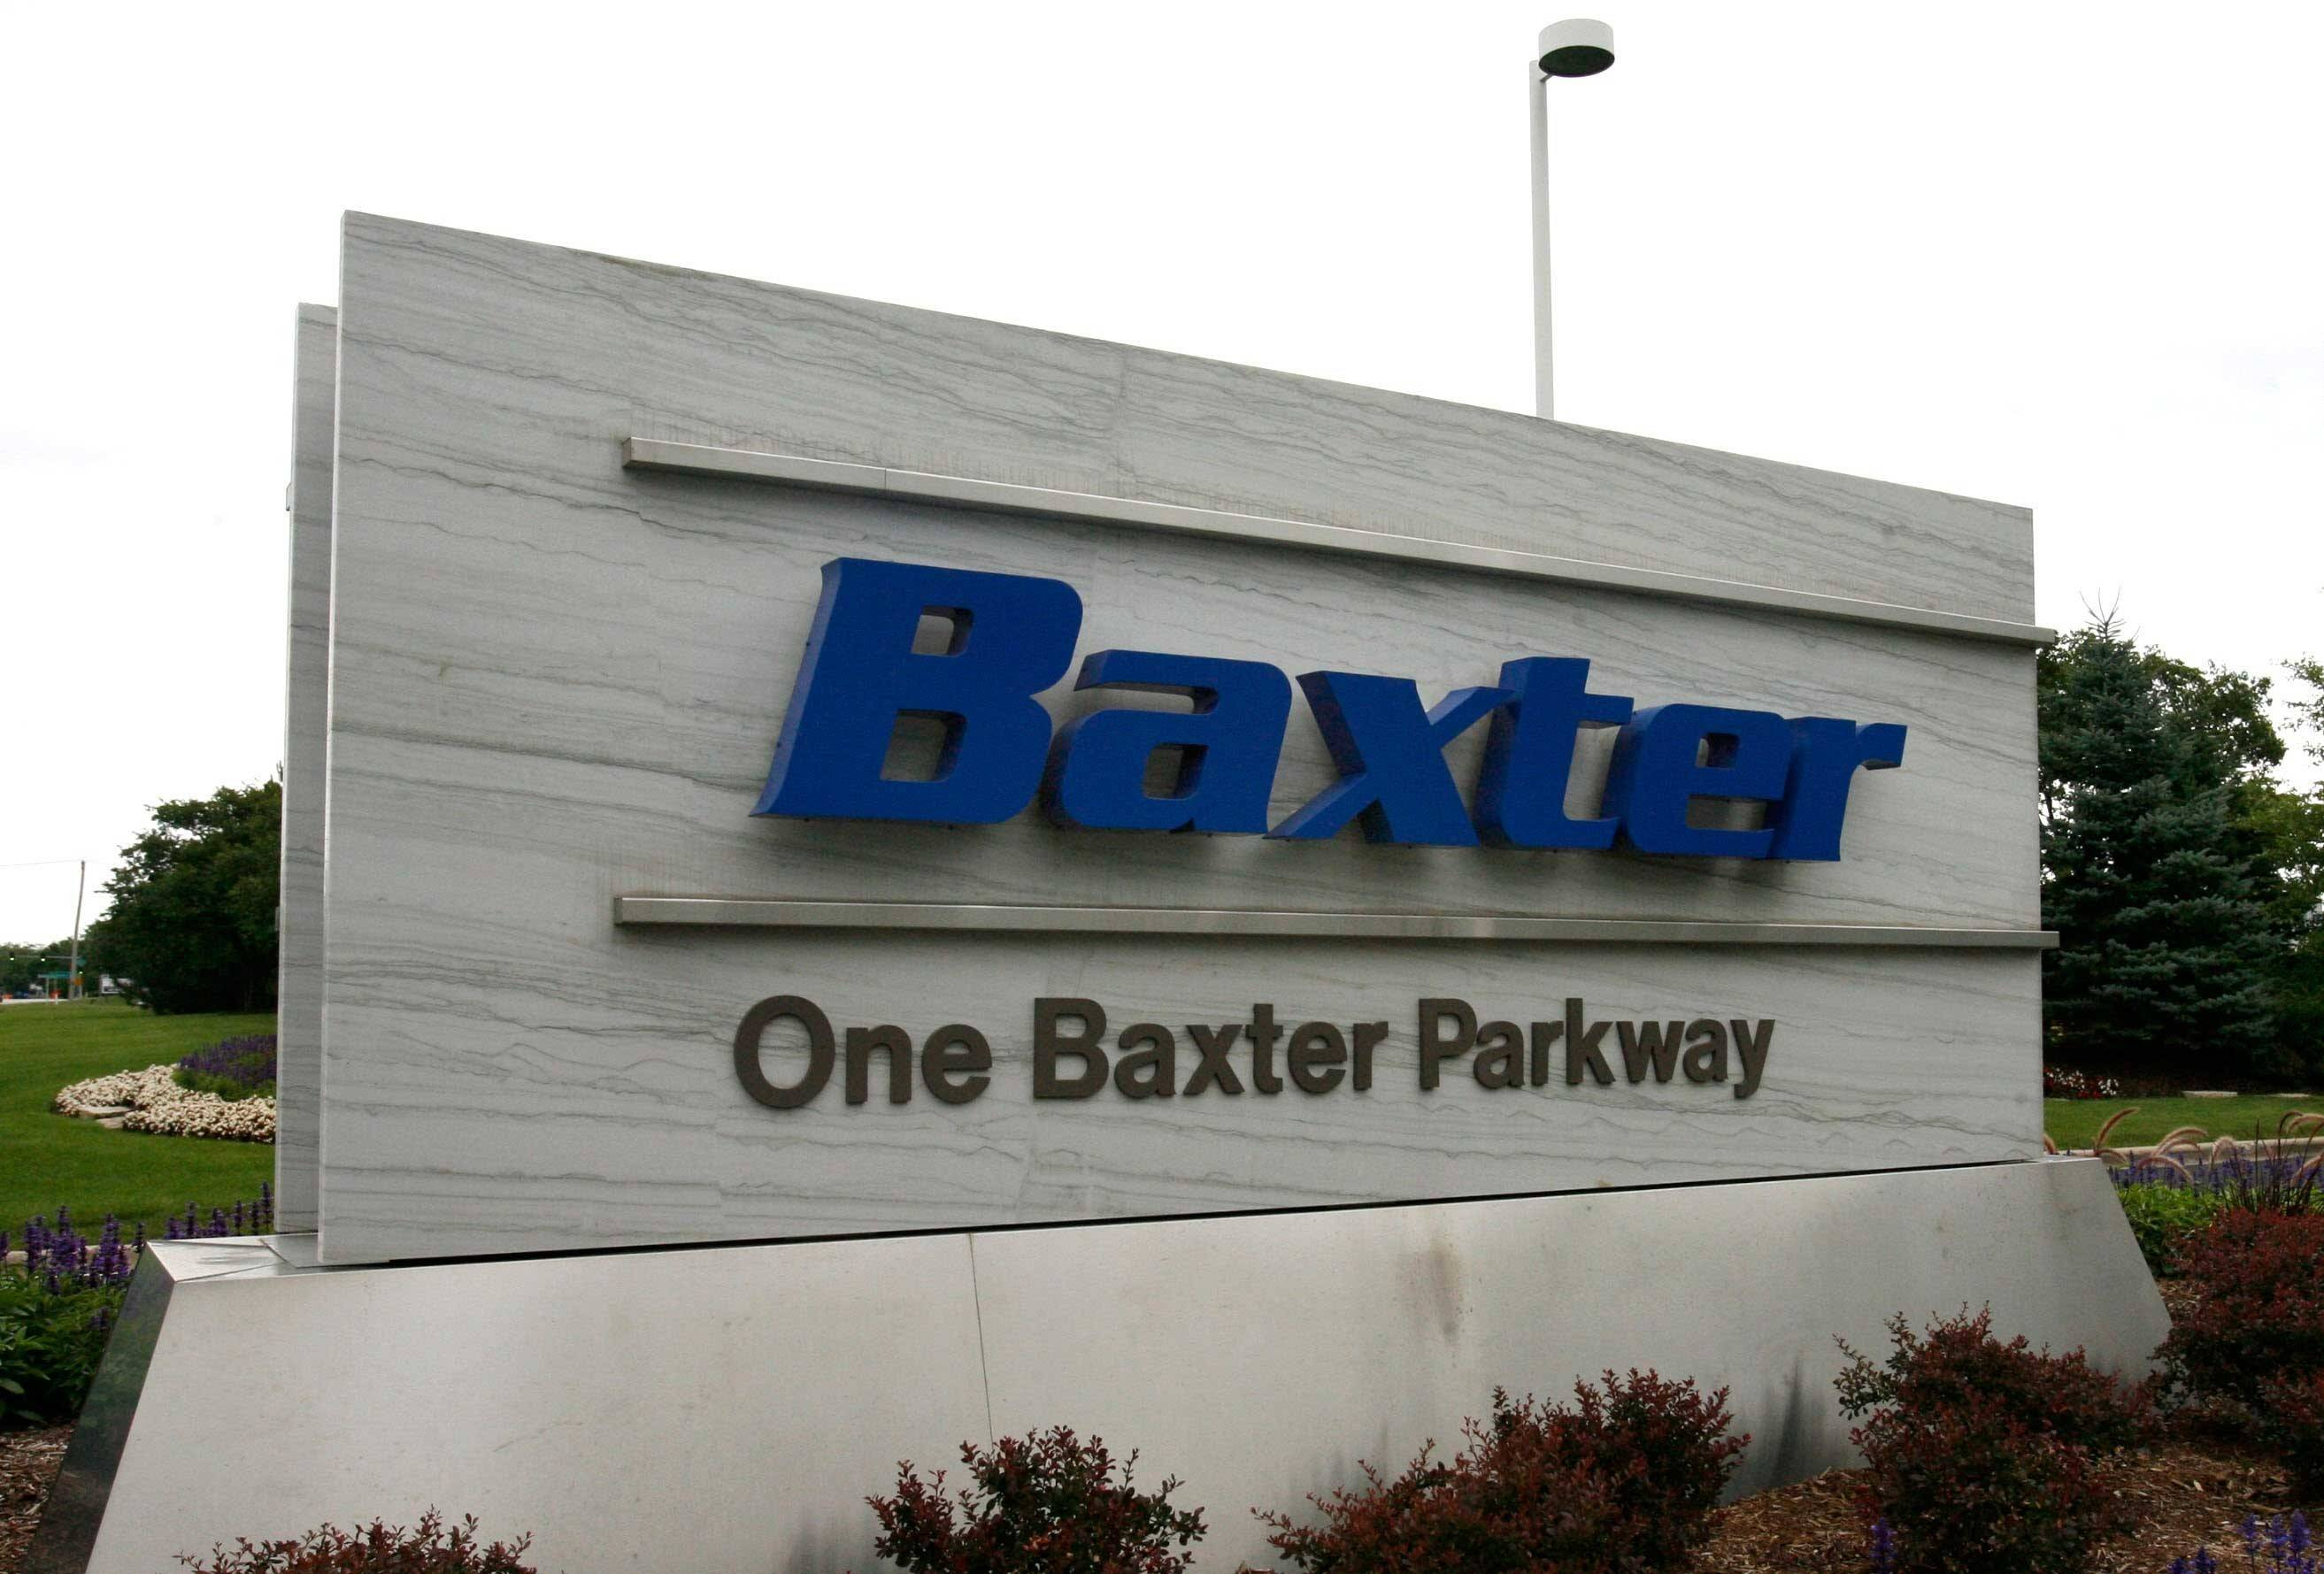 Deerfield-based Baxter International Inc. is splitting itself into two separate businesses -- one focusing on biopharmaceuticals and the other on other medical products.